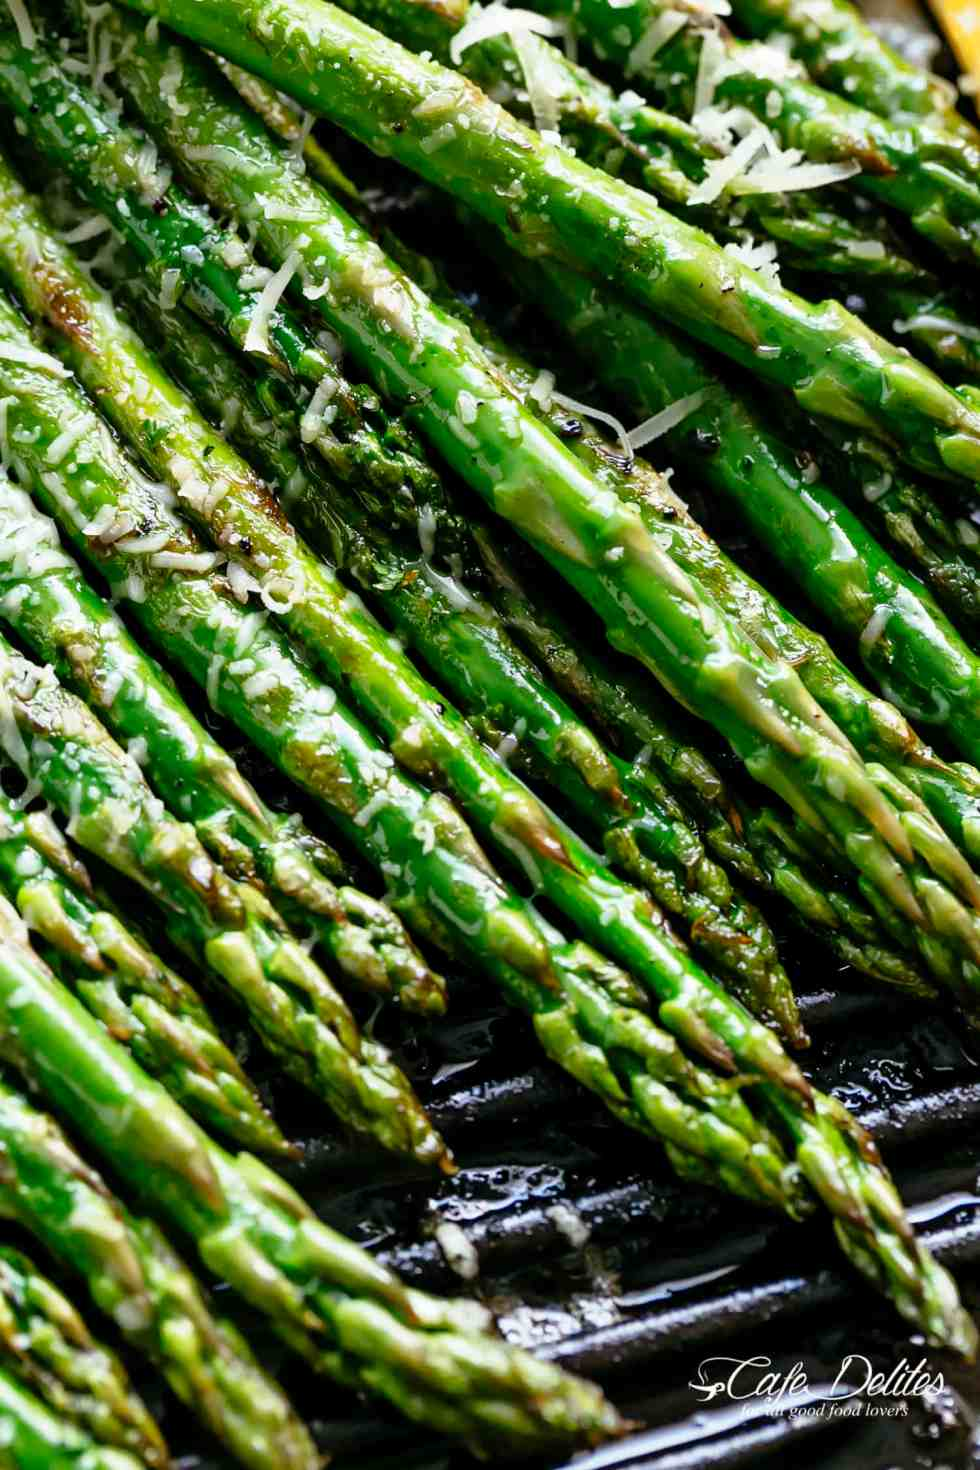 Grilled Asparagus with parmesan cheese and lemon juice | cafedelites.com